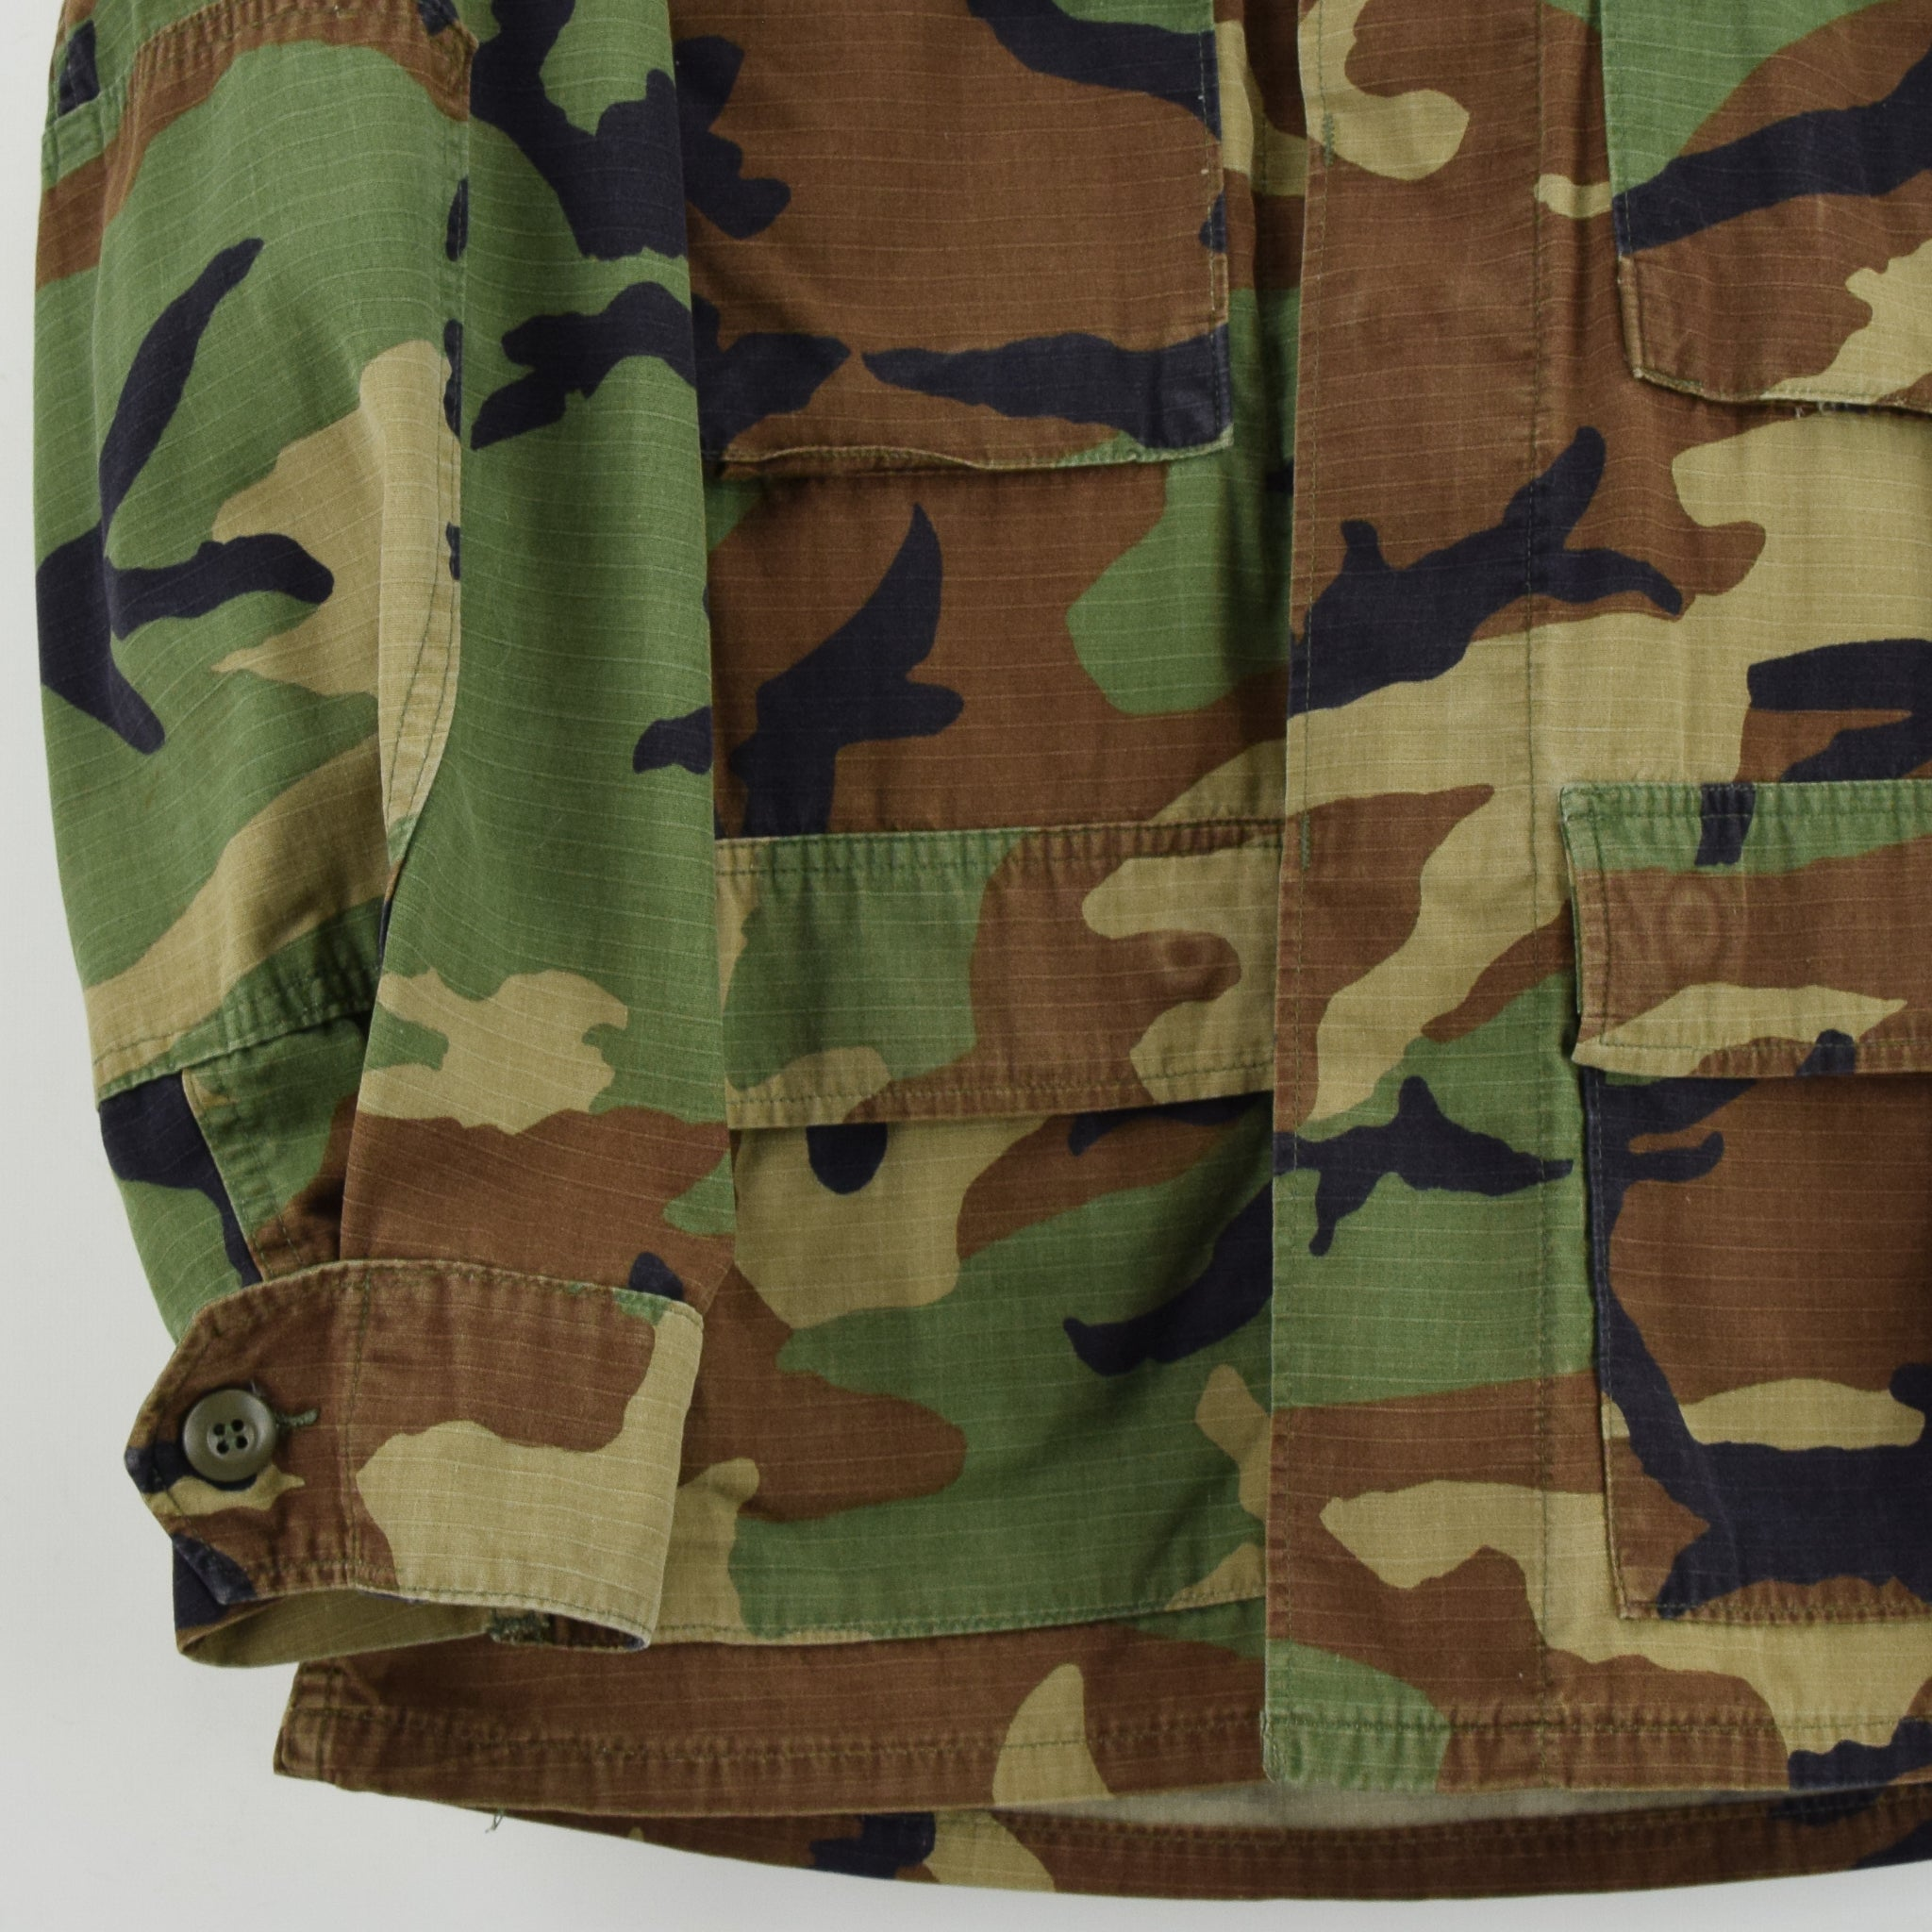 Vintage US Army Hot Weather Woodland Camouflage Combat Coat Field Jacket S front hem